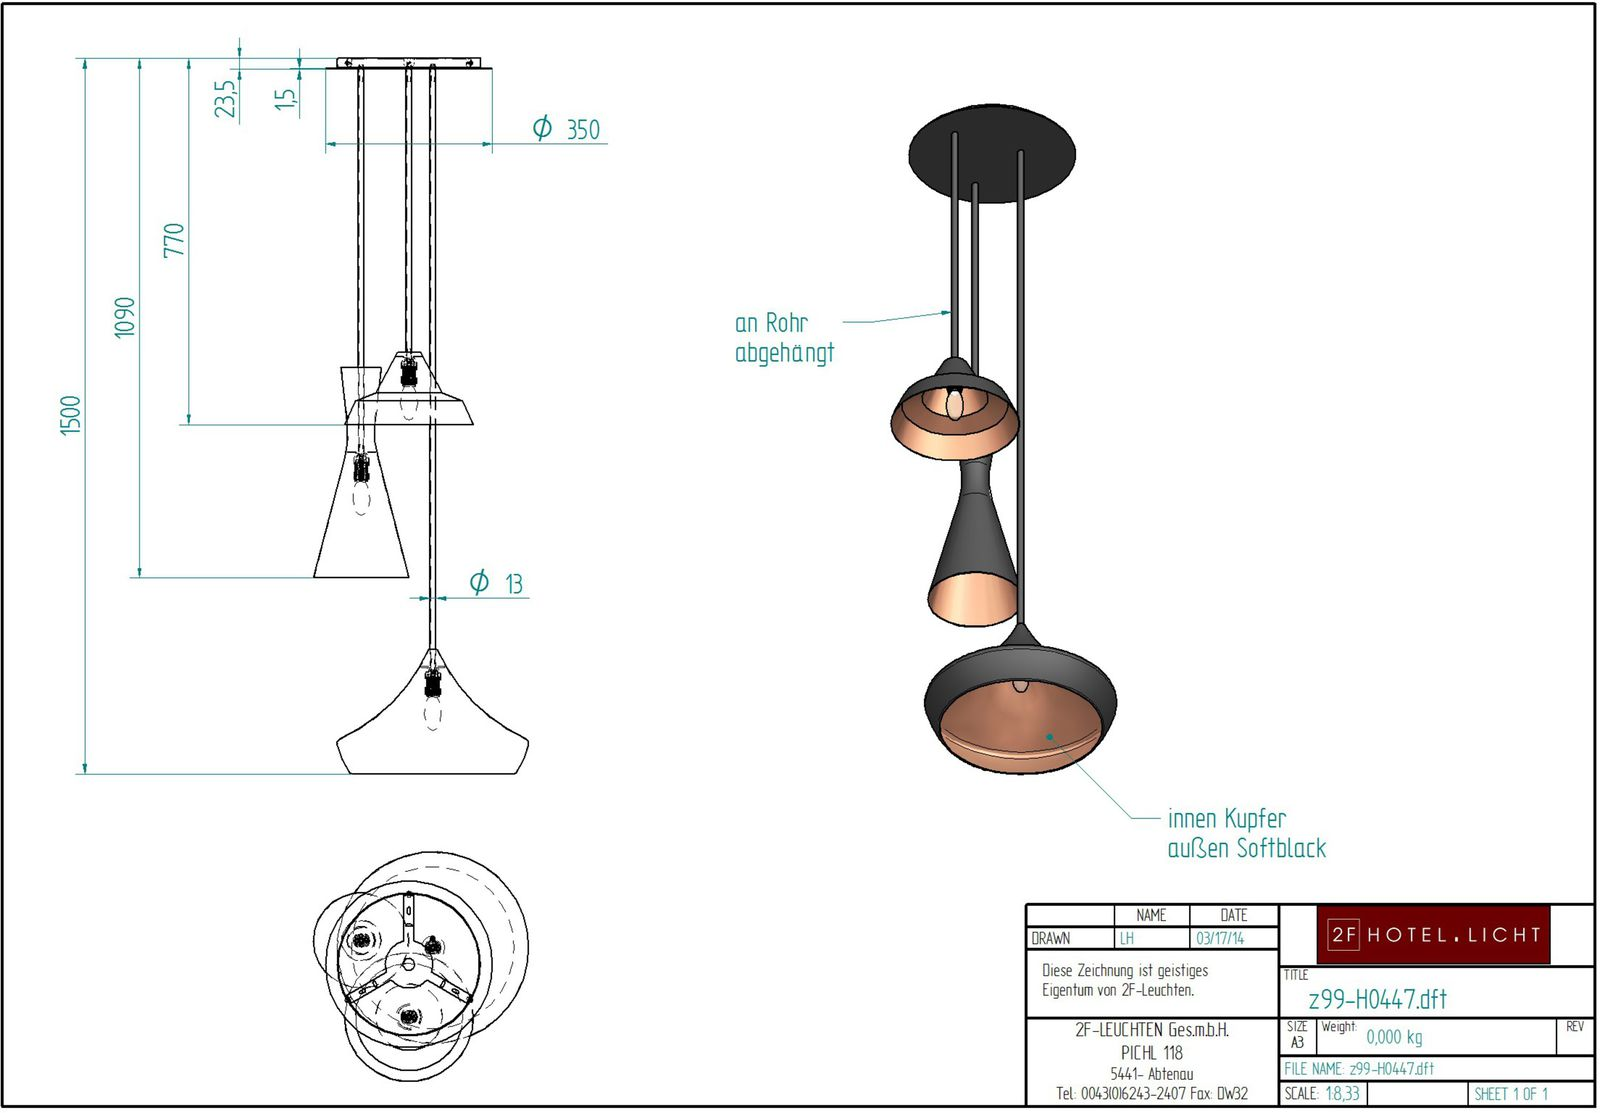 Ciling Lamp with 3 different metal-shades, L:~500mm, H:1500mm, surface: Metall inside copper / outside softblack, techn. Data: 3xE14,40W